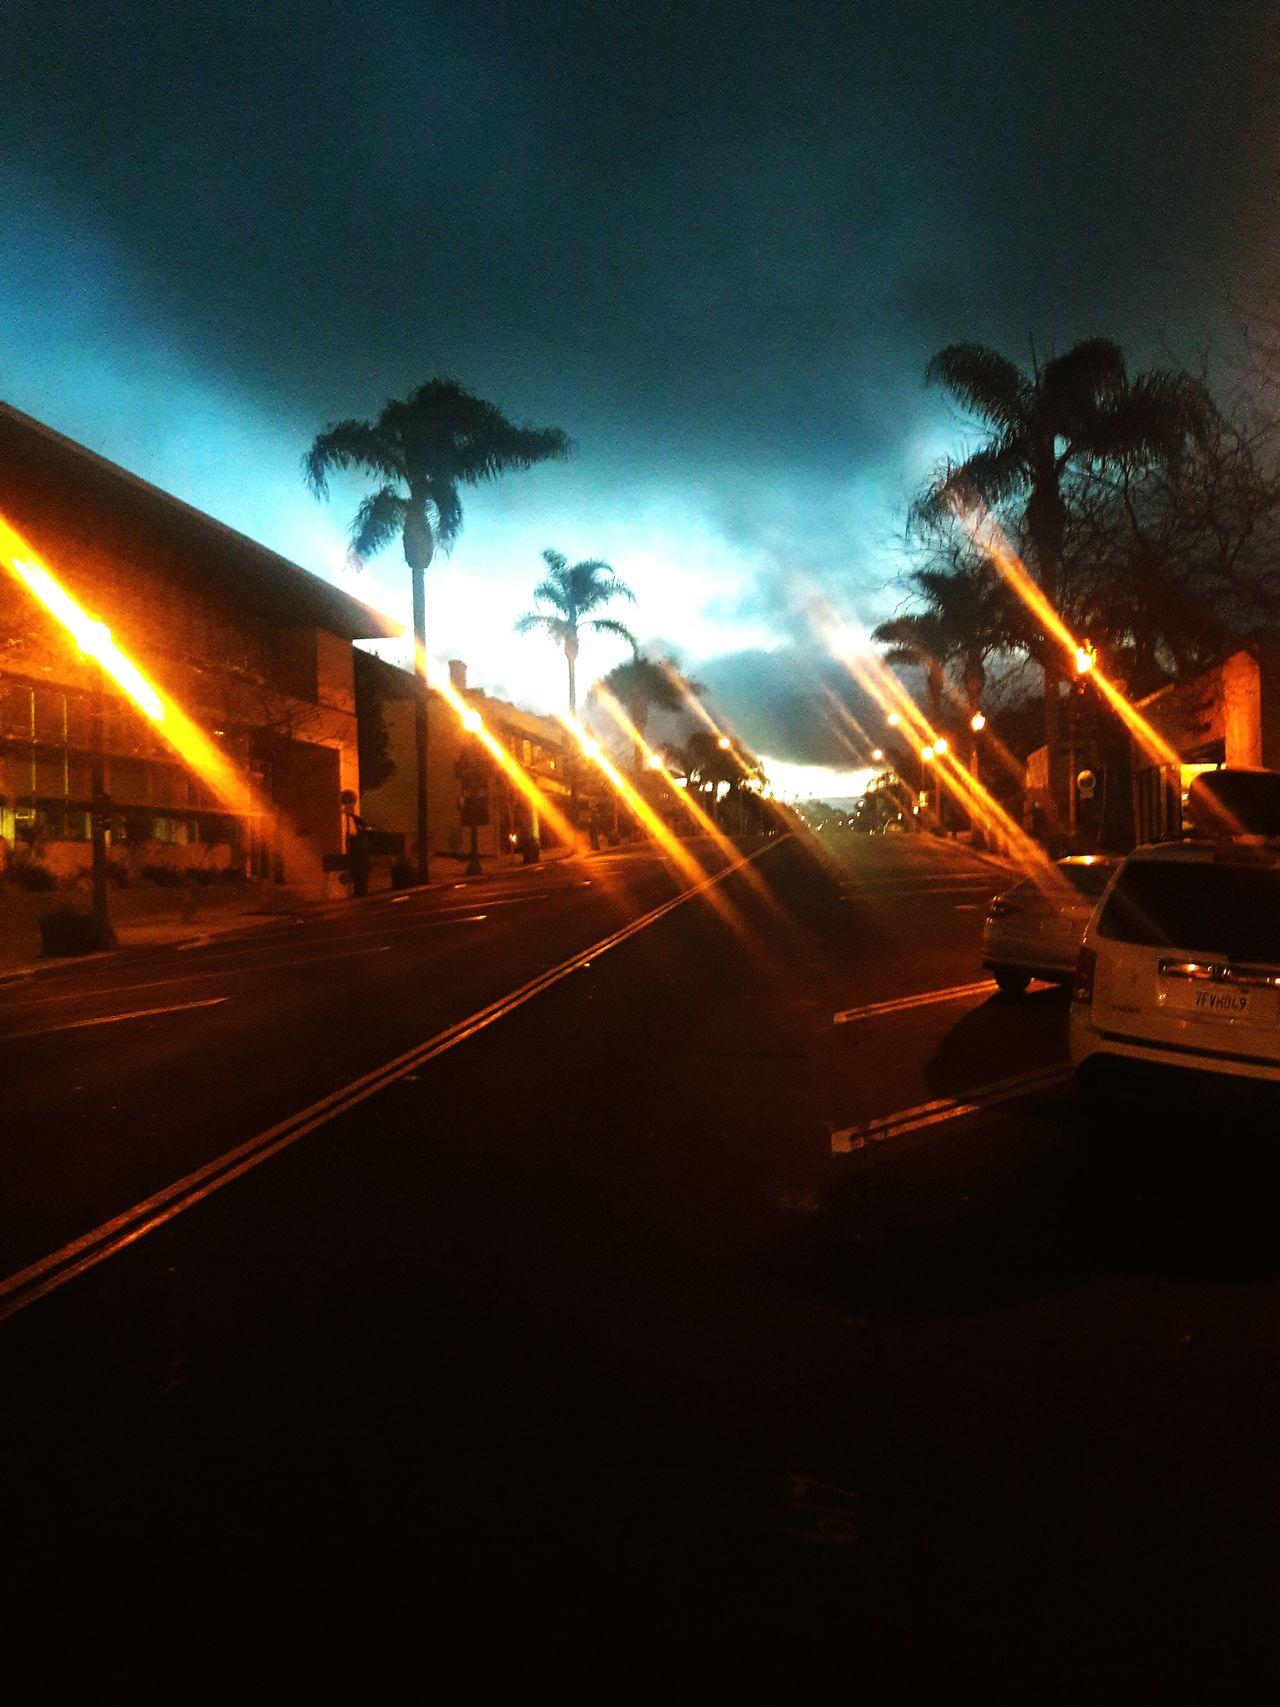 Street Light Illuminated Outdoors No People Sky Night Dusky Sky Dusk In The City Ventura Ca Rays Of Light Creative Photography Light And Shadow City Sky_collection